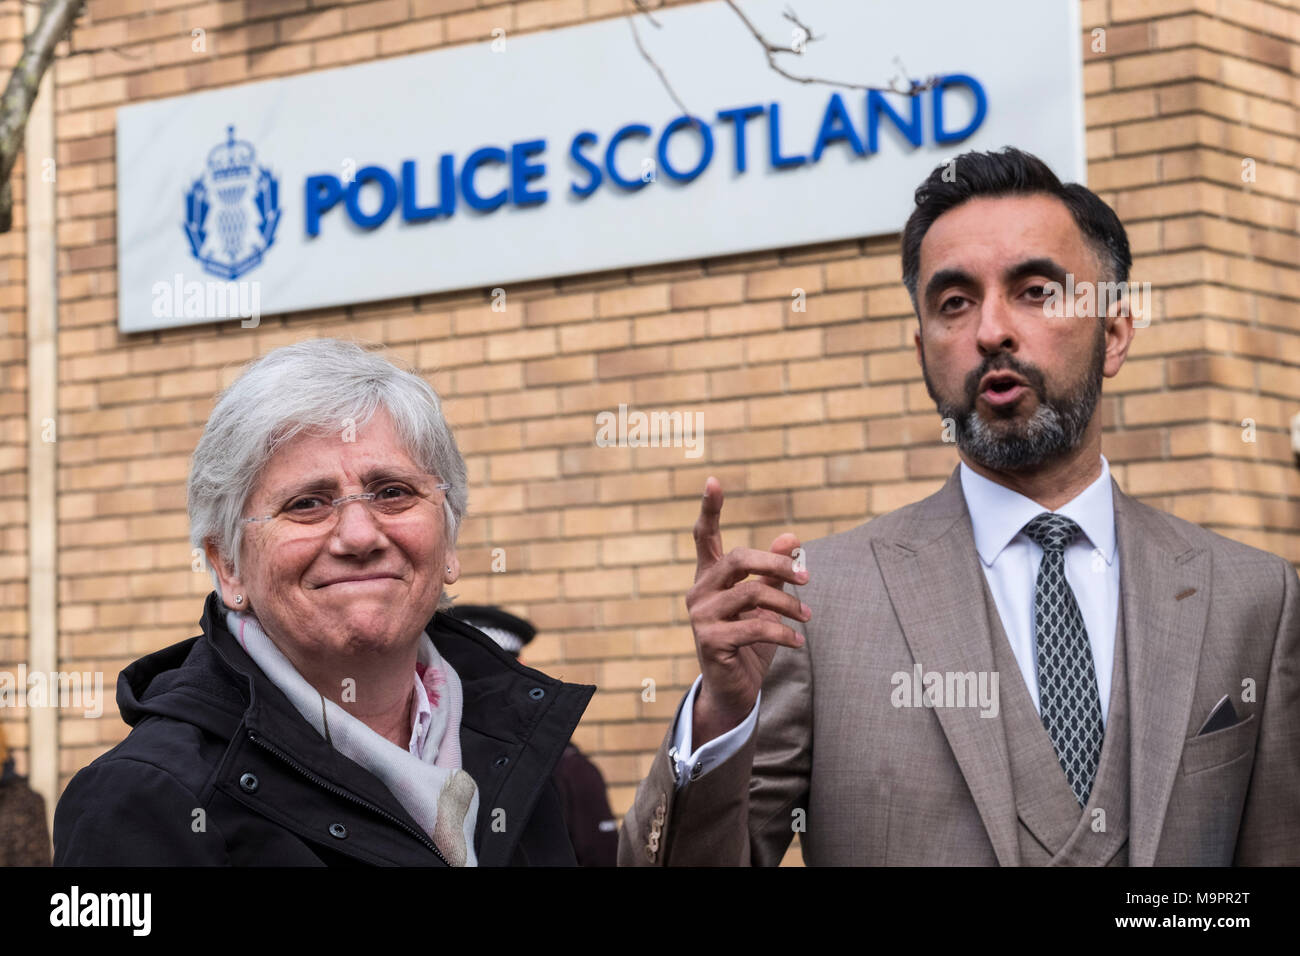 Edinburgh, Scotland,UK. 28 March 2018. Clara Ponsati Catalonia former Education Minister arrives at St Leonards police station in Edinburgh to hand her herself in under an extradition arrest warrant issued by the Spanish Government. She is accompanied by her lawyer Aamer Anwar. Credit: Iain Masterton/Alamy Live News - Stock Image